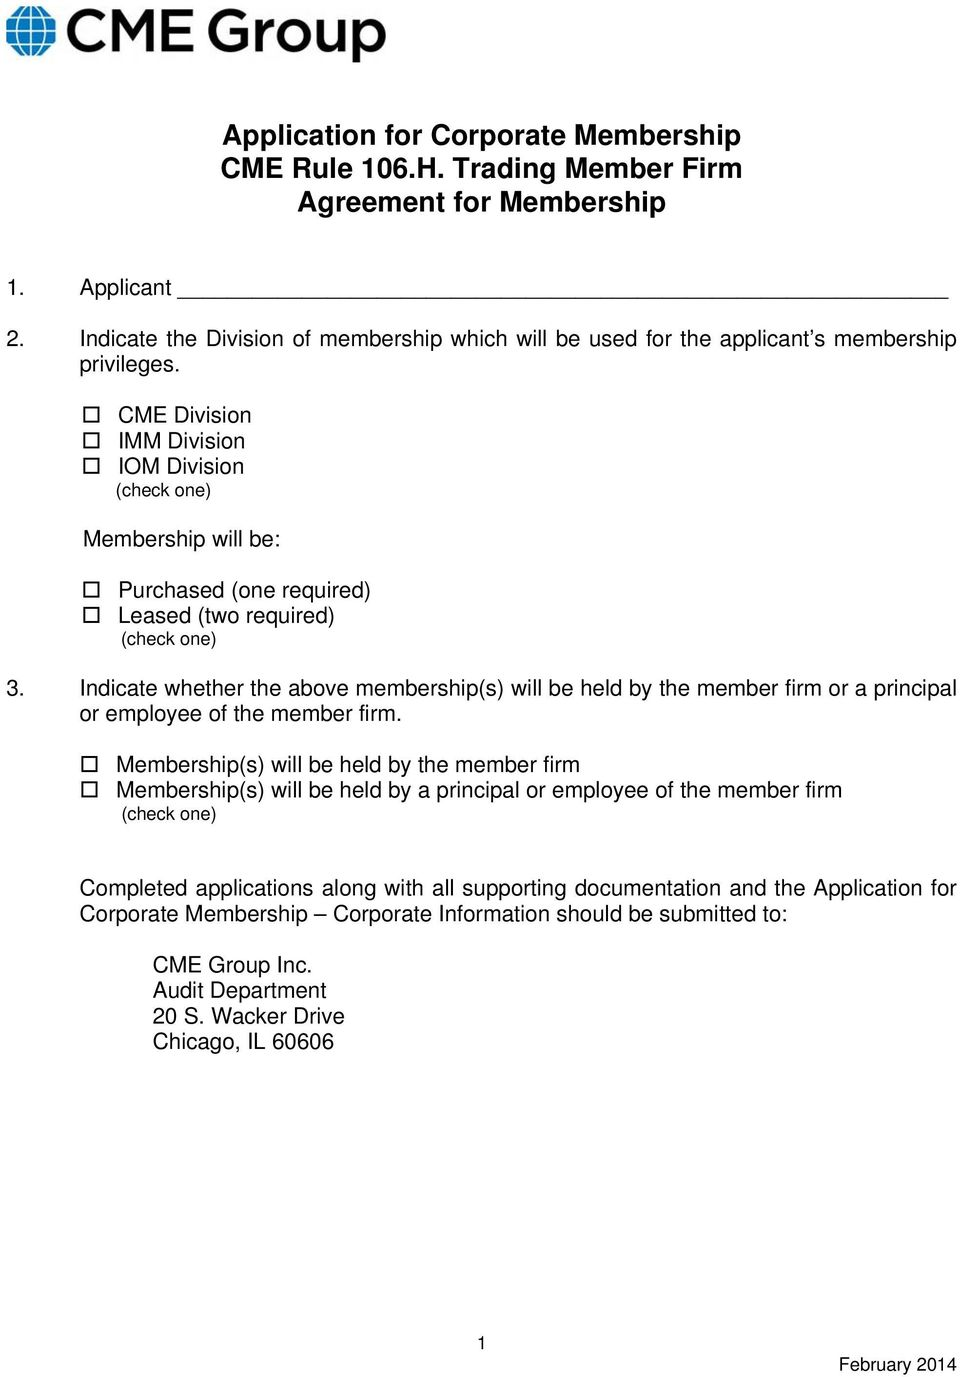 Application For Corporate Membership Cme Rule 106h Trading Member